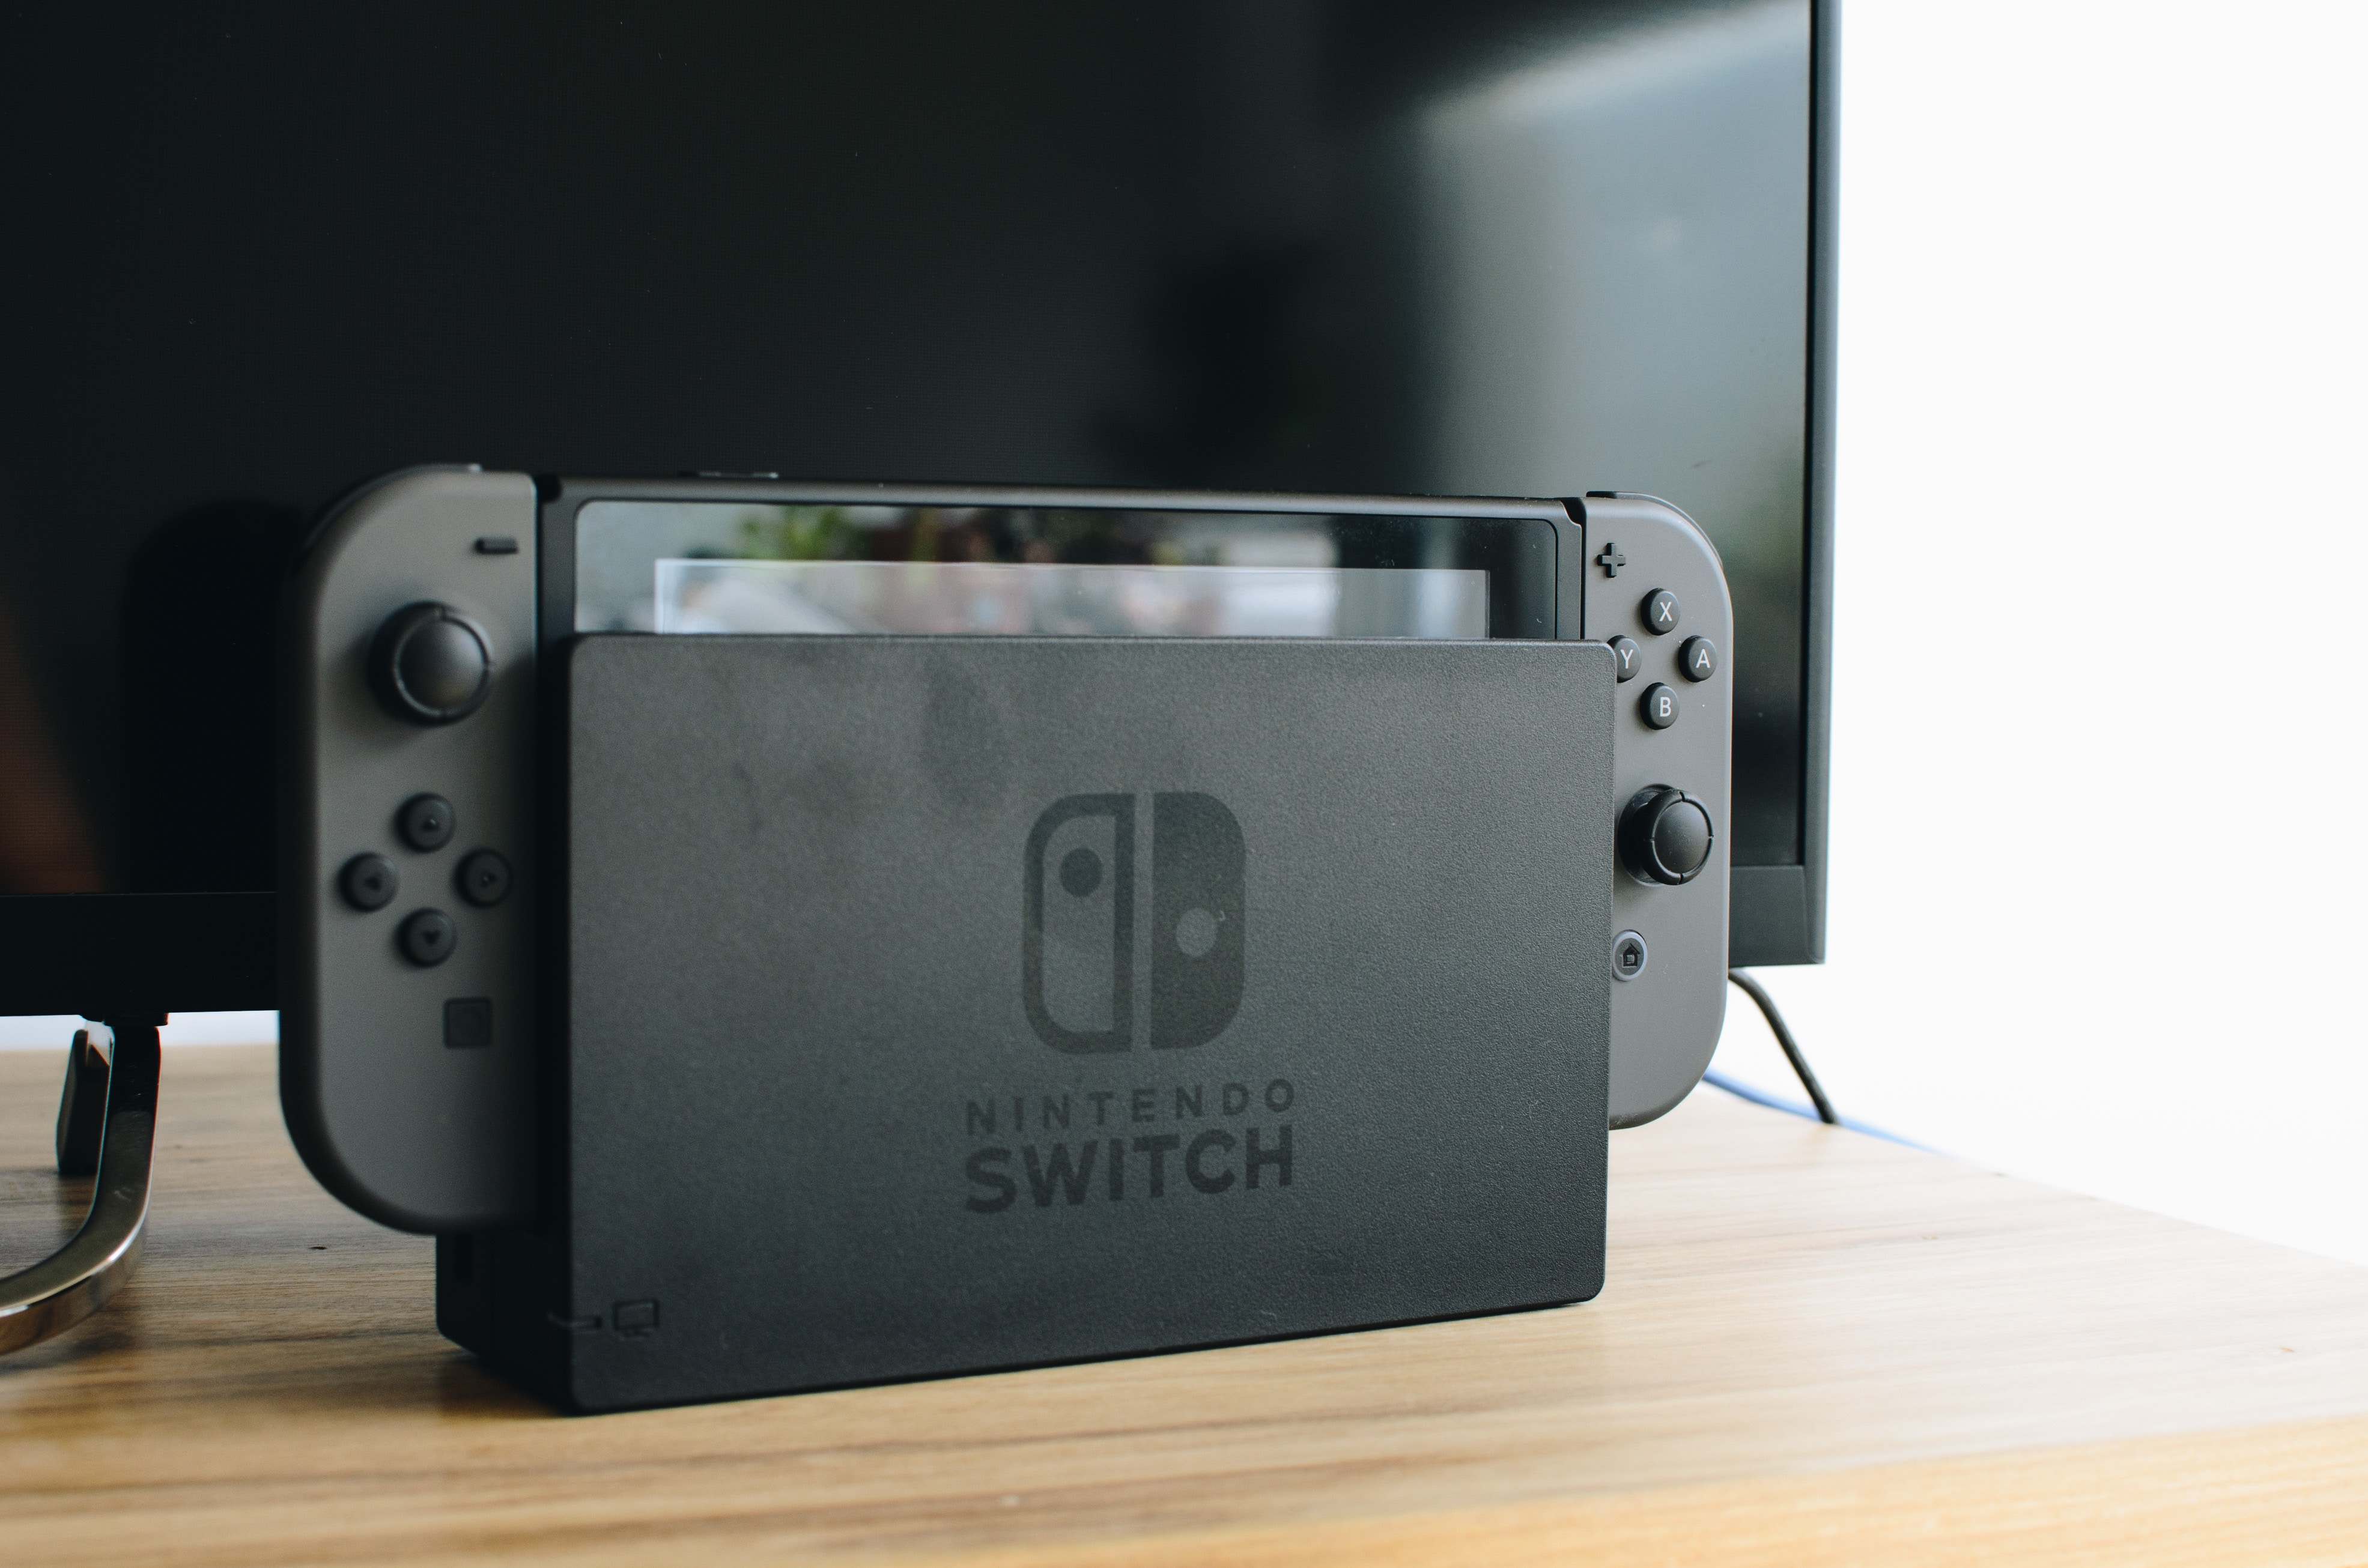 How to listen to Discord and Nintendo switch through the